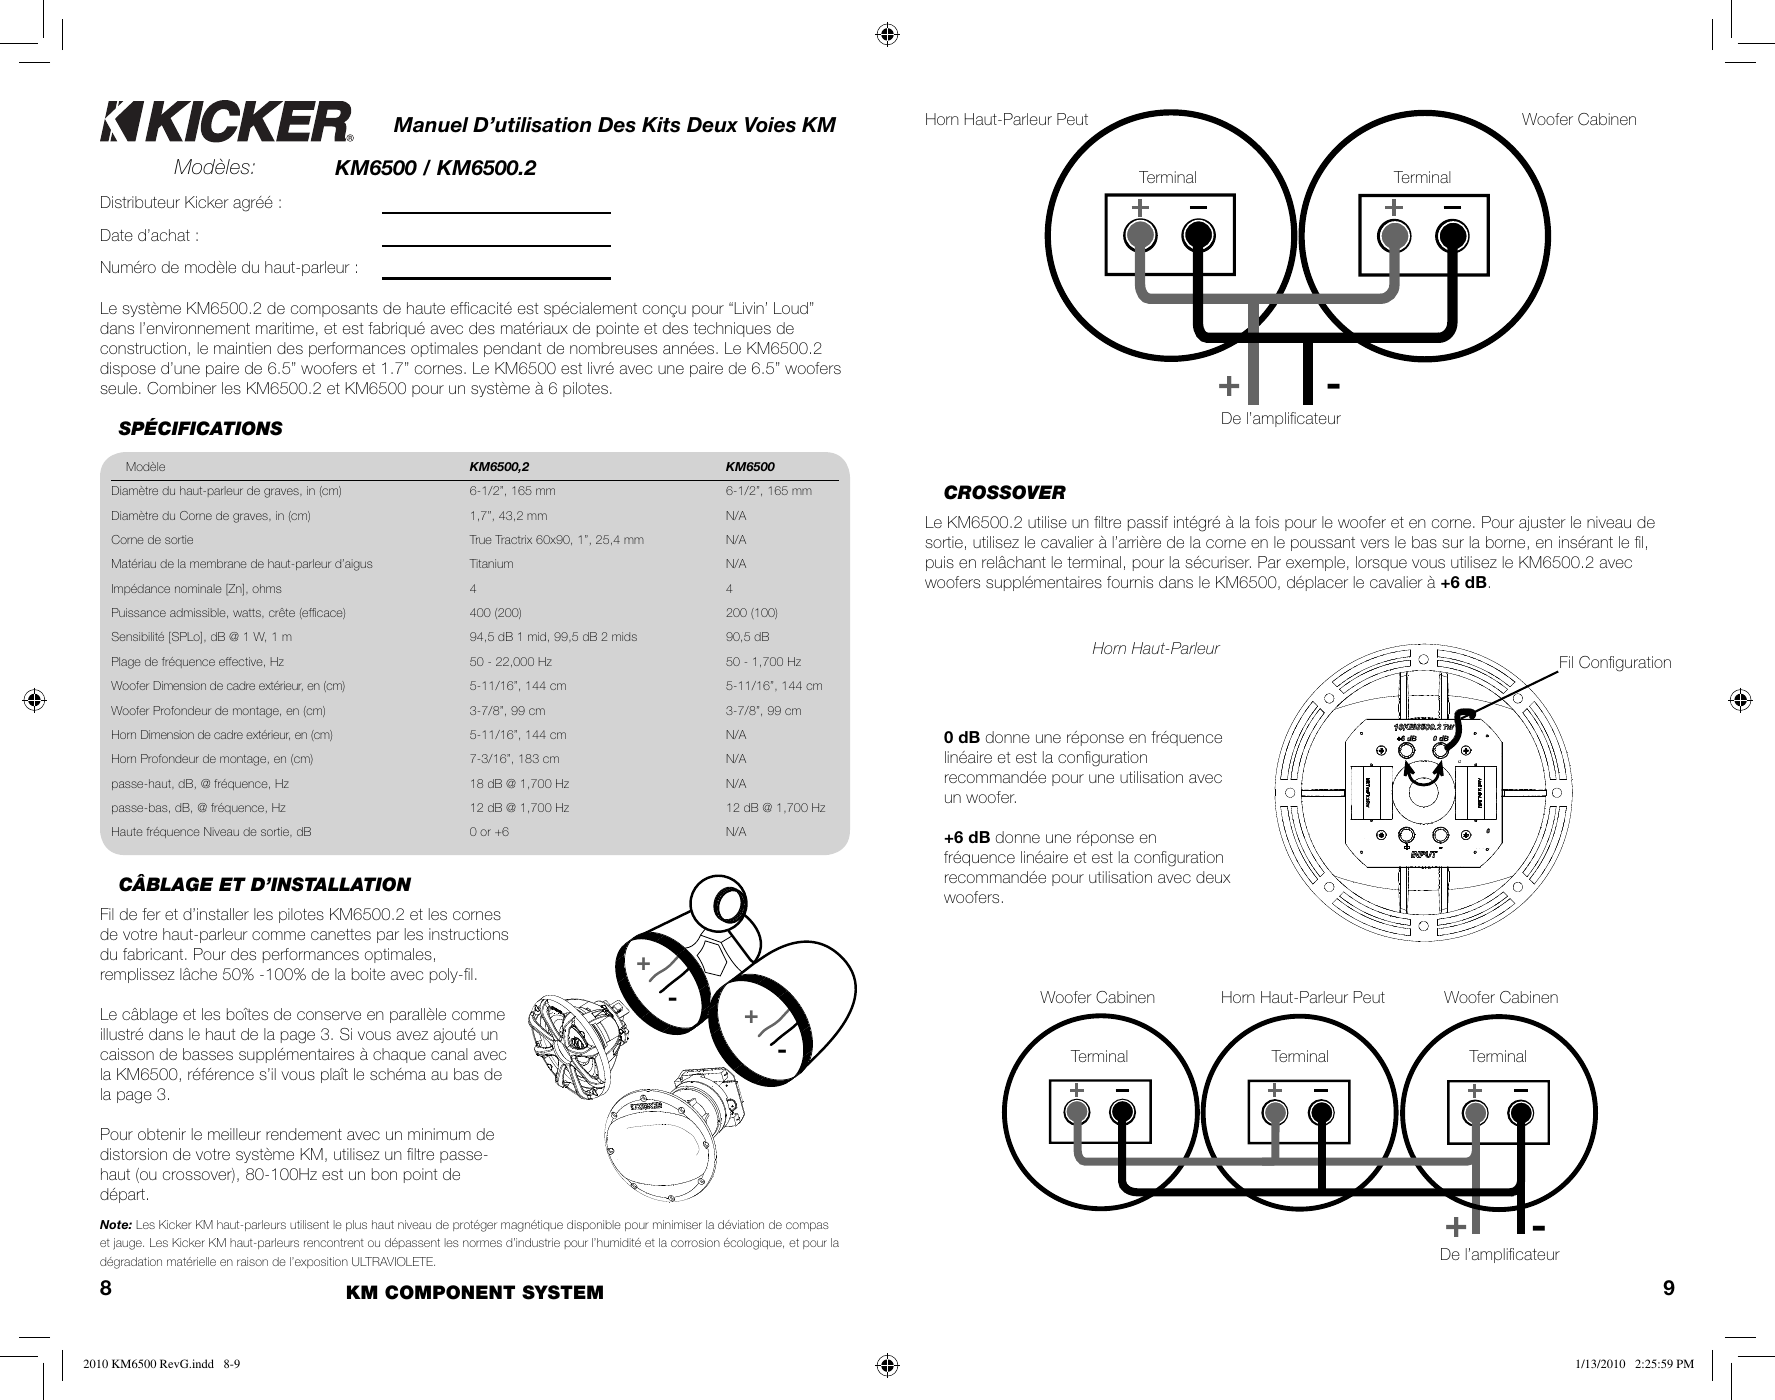 Kicker 2010 Km 6500 2 Component System Owners Manual Km6500 Revg